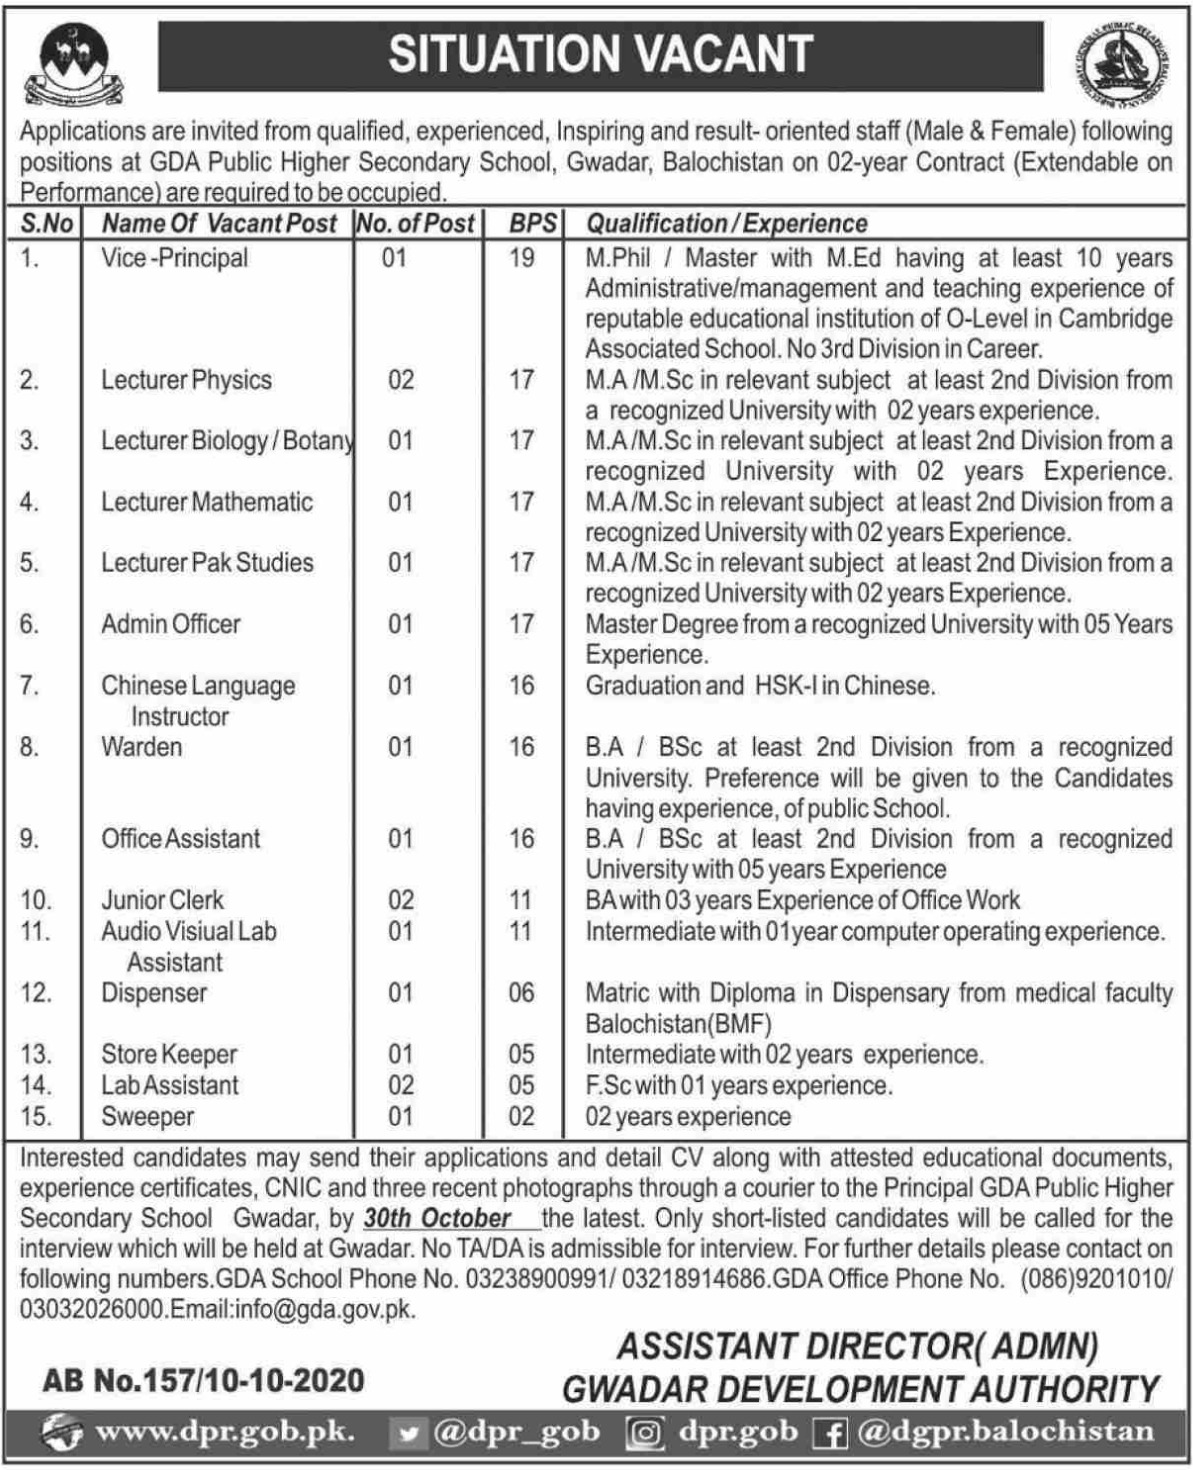 GDA Public Higher Secondary School Gwadar Balochistan Jobs October 2020